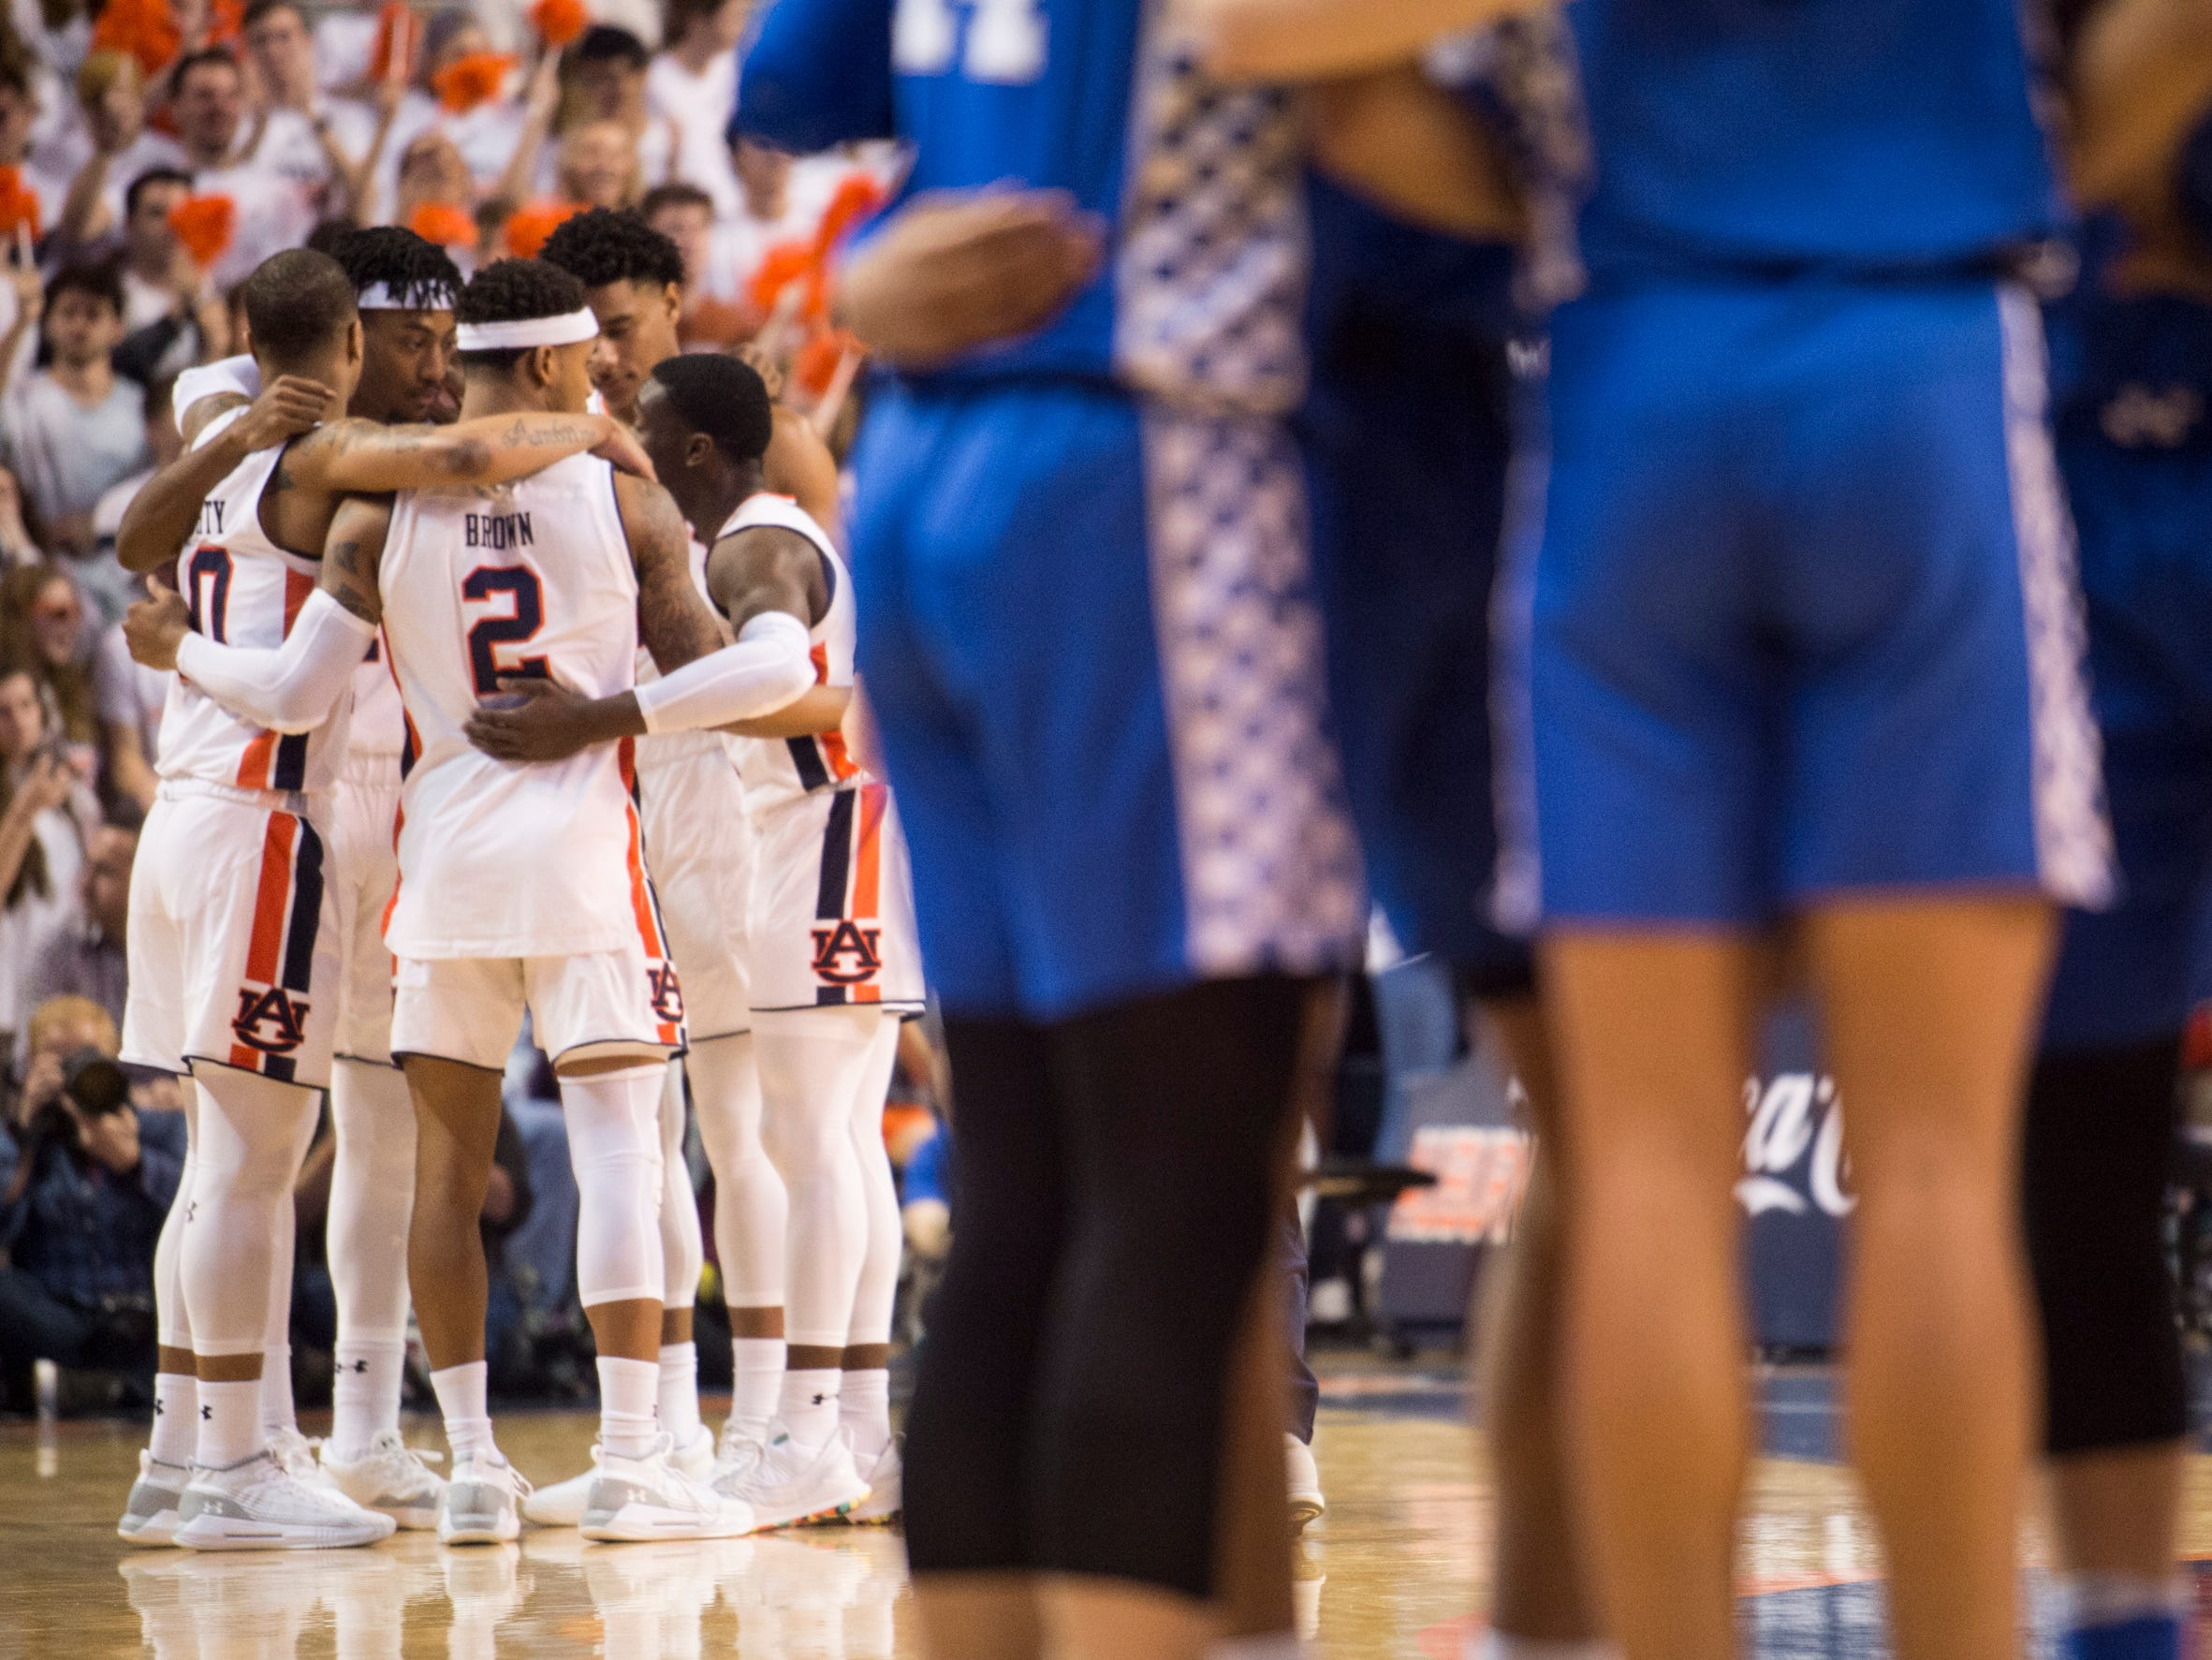 Auburn's team huddles up before they take on Kentucky at Auburn Arena in Auburn, Ala., on Saturday, Jan. 19, 2019. Kentucky leads Auburn 35-27 at halftime.